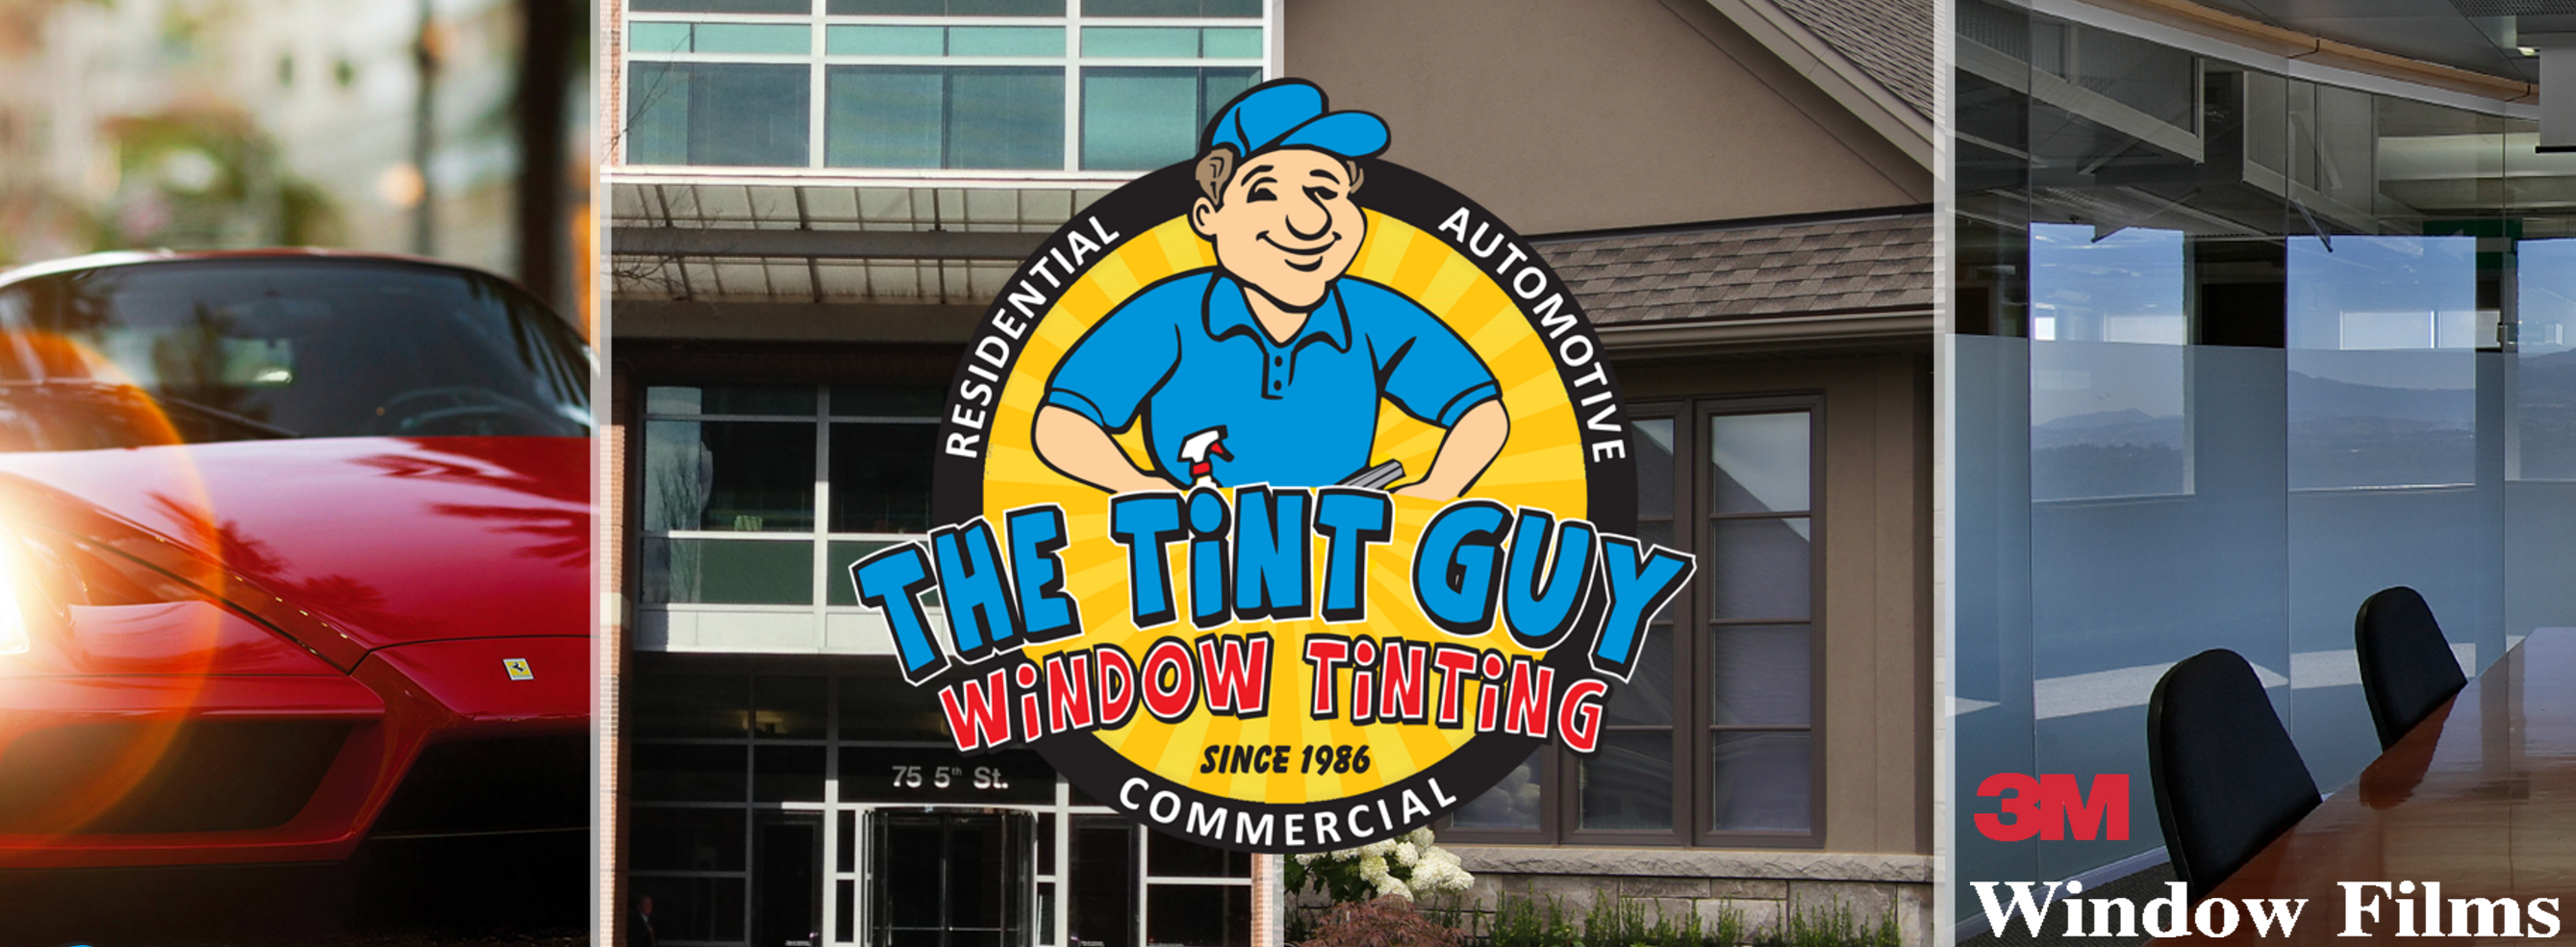 The Tint Guy Window Tinting reviews | 10262 Main St - Woodstock GA